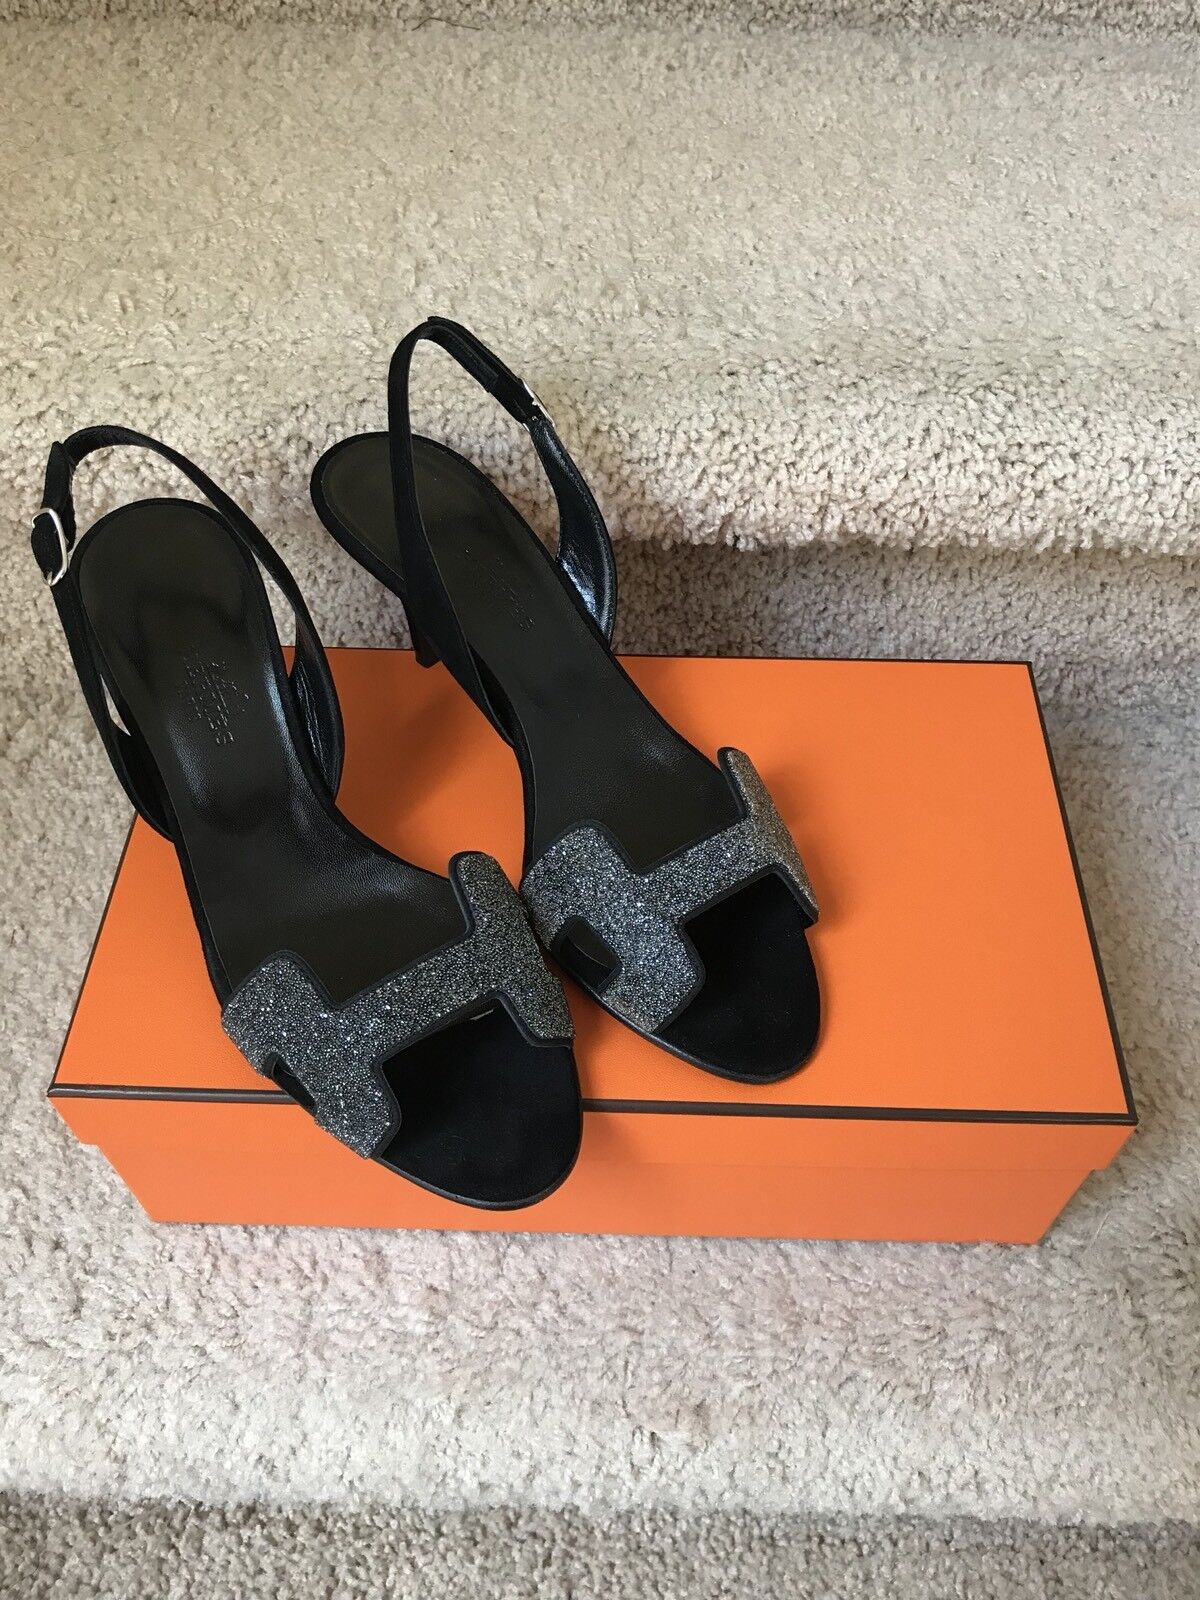 Brand New Hermes Night Crystal Sandals 35.5. Retail  1300